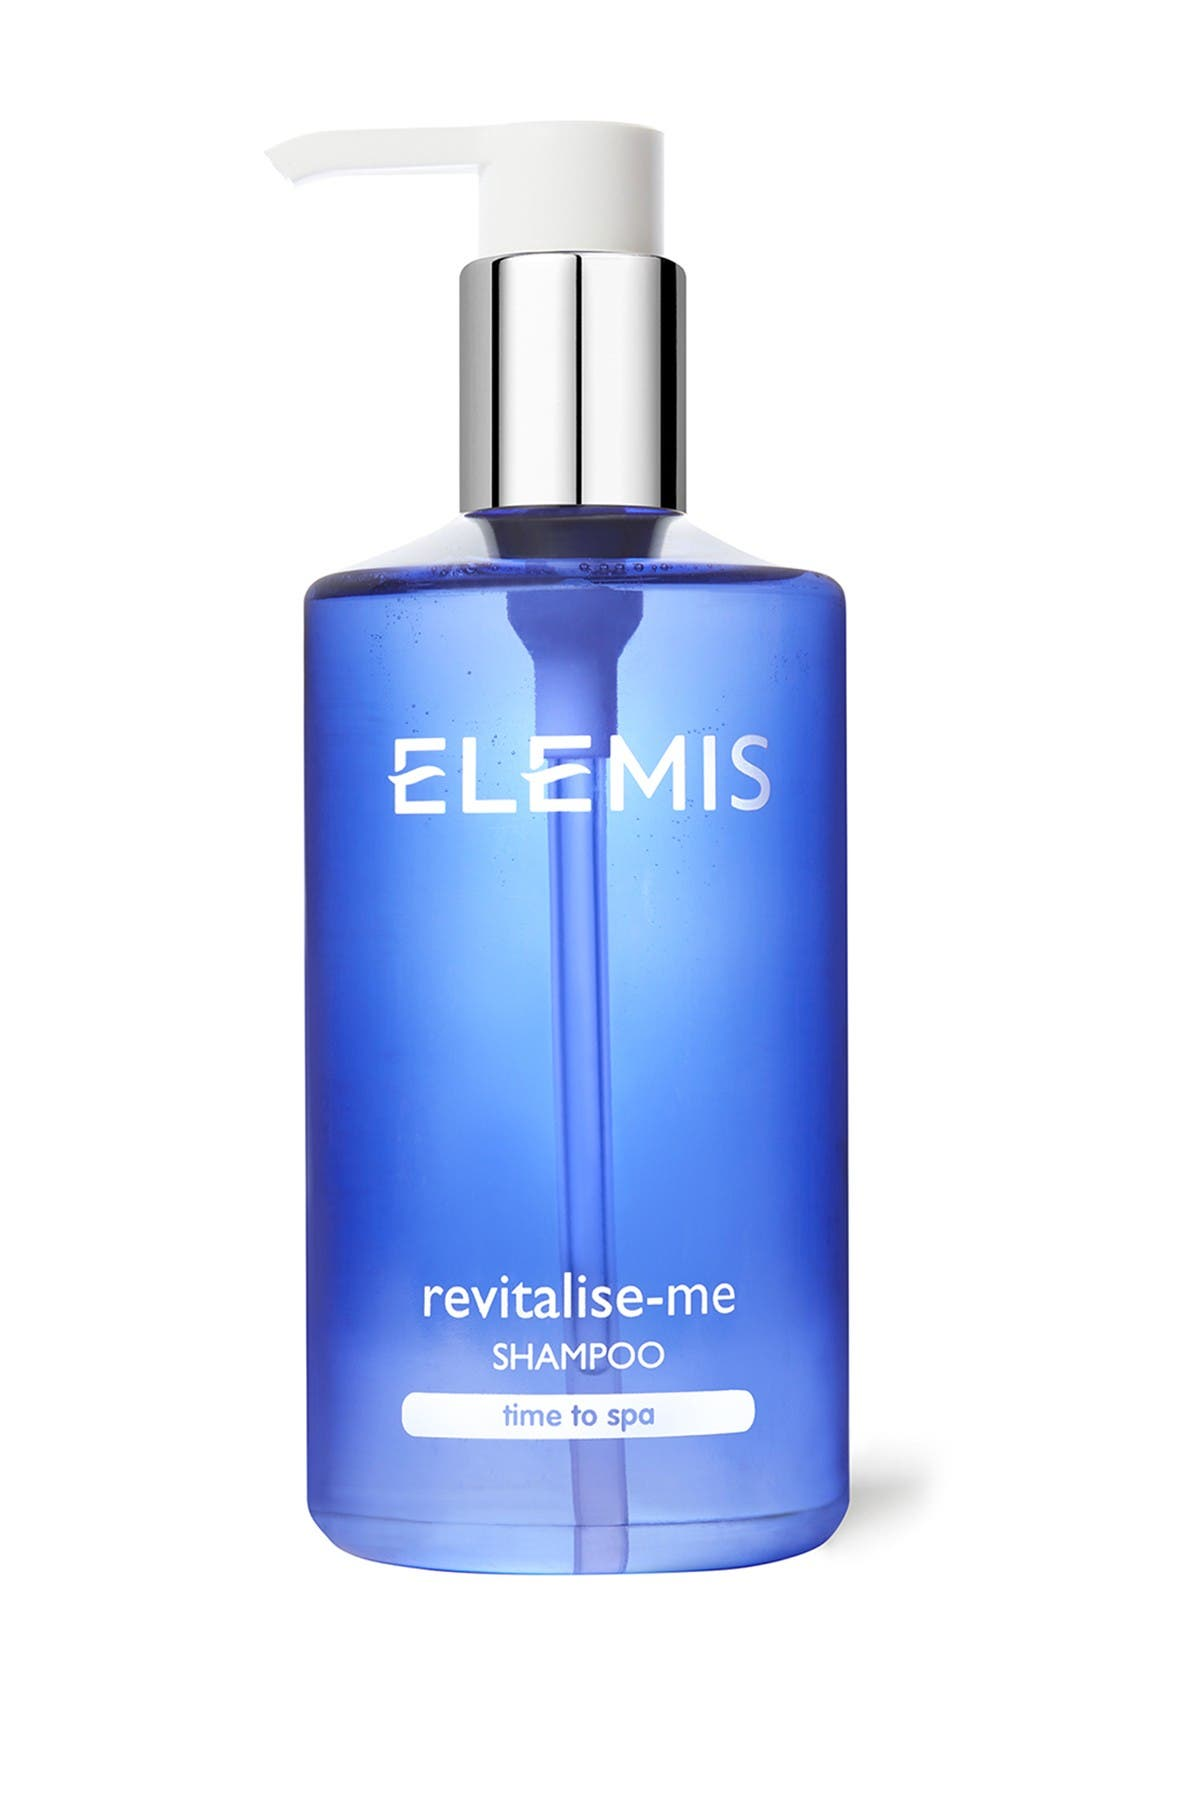 Image of Elemis Revitalise-Me Shampoo